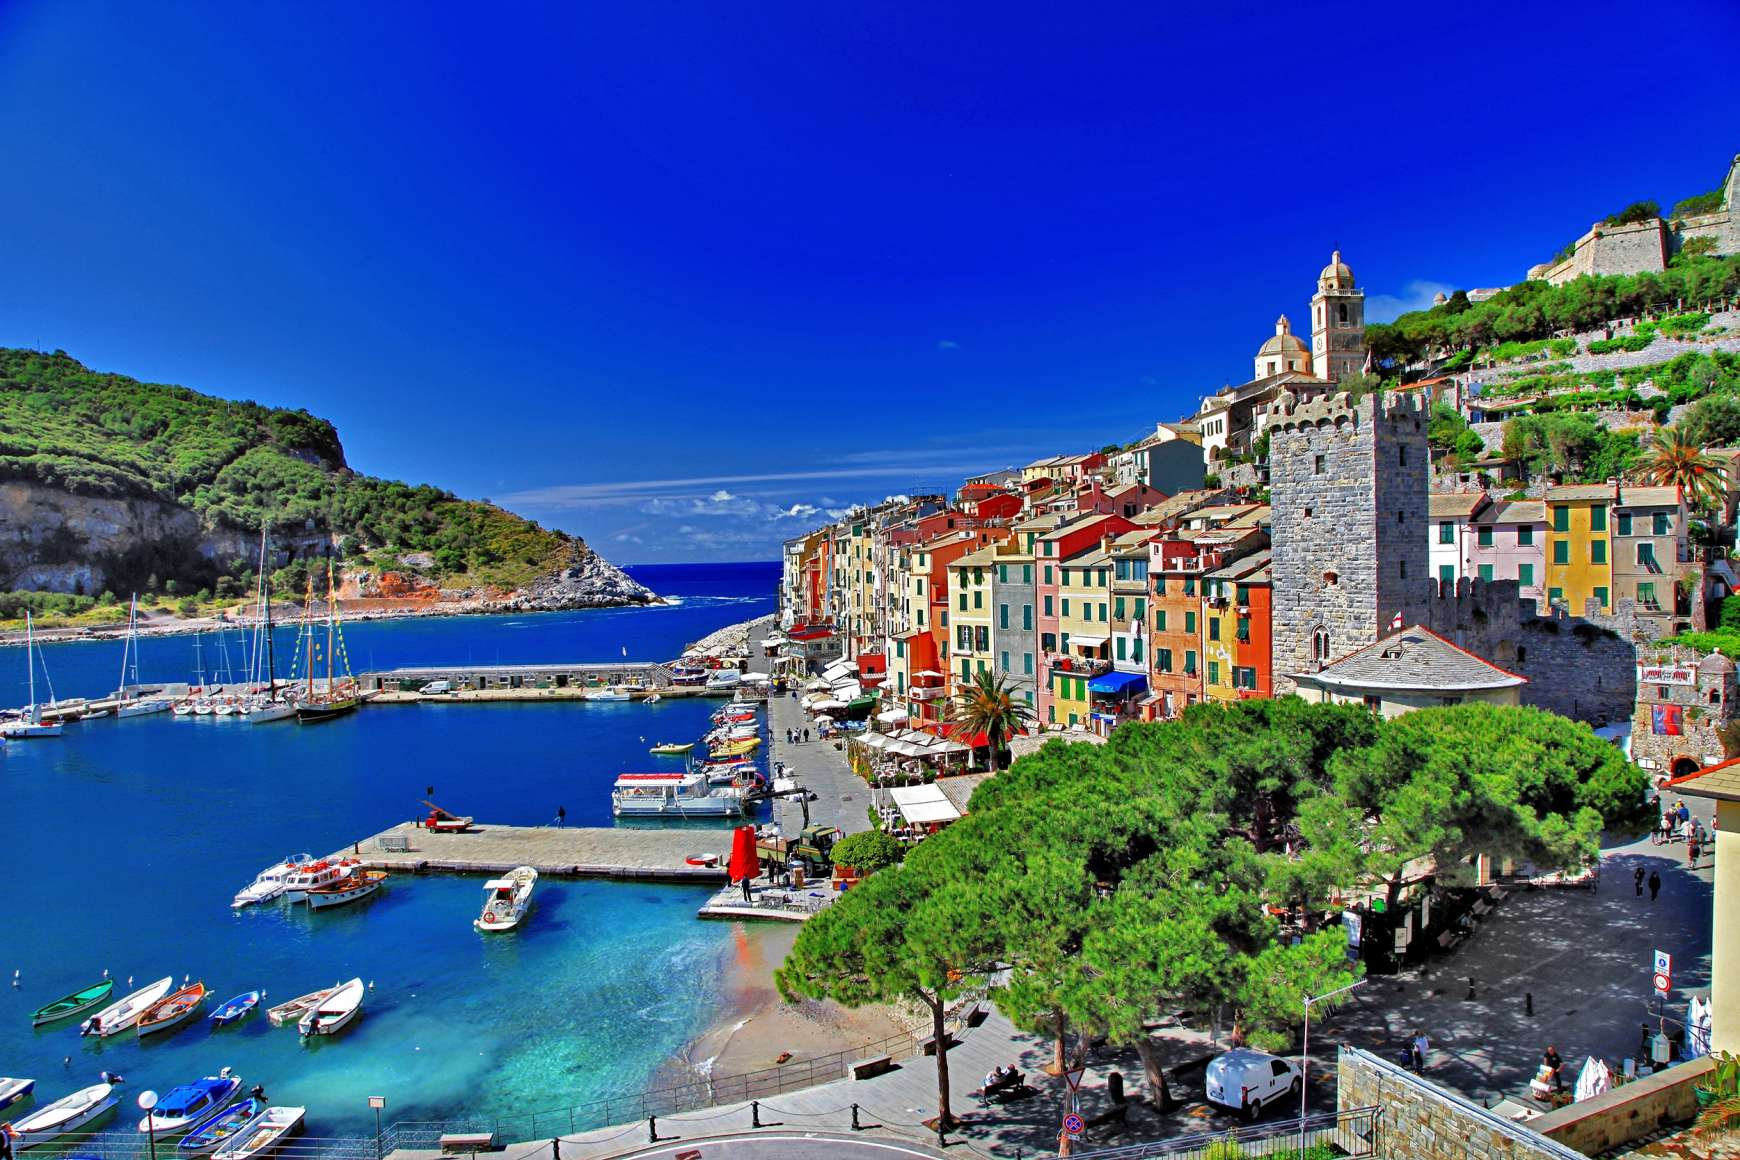 View of Cinque Terre with the backdrop of the Ligurian Sea